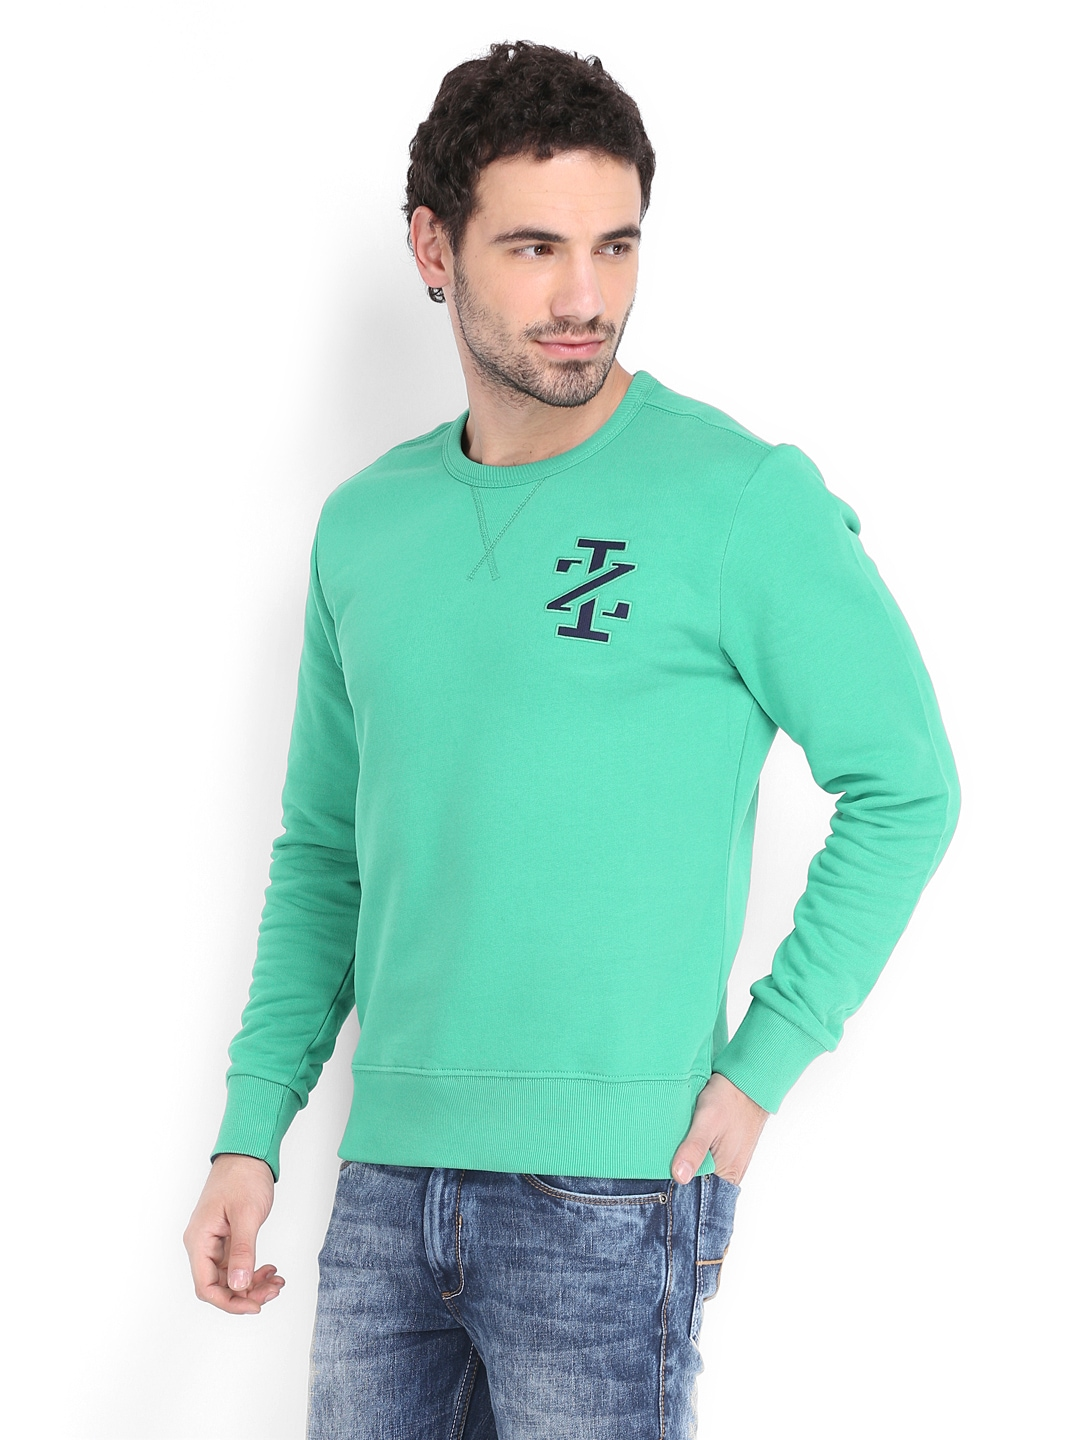 Find great deals on eBay for slim fit sweatshirt. Shop with confidence.